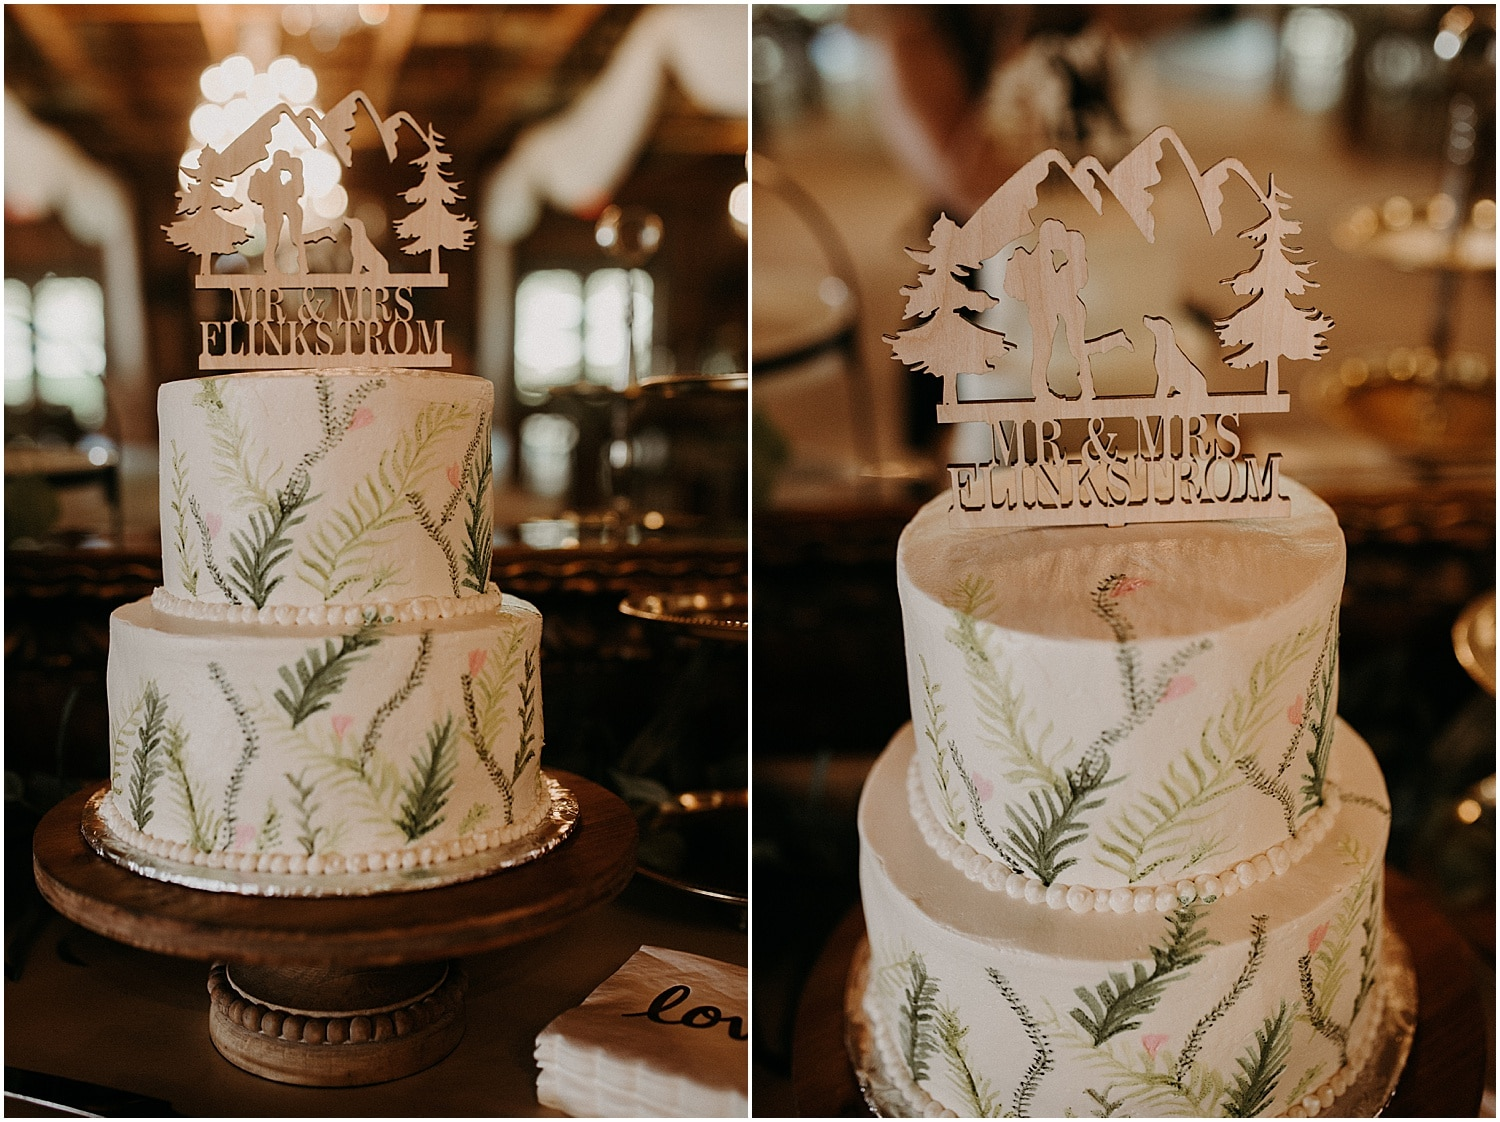 Rustic Maine Wedding cake, with leaves and wood cut topper